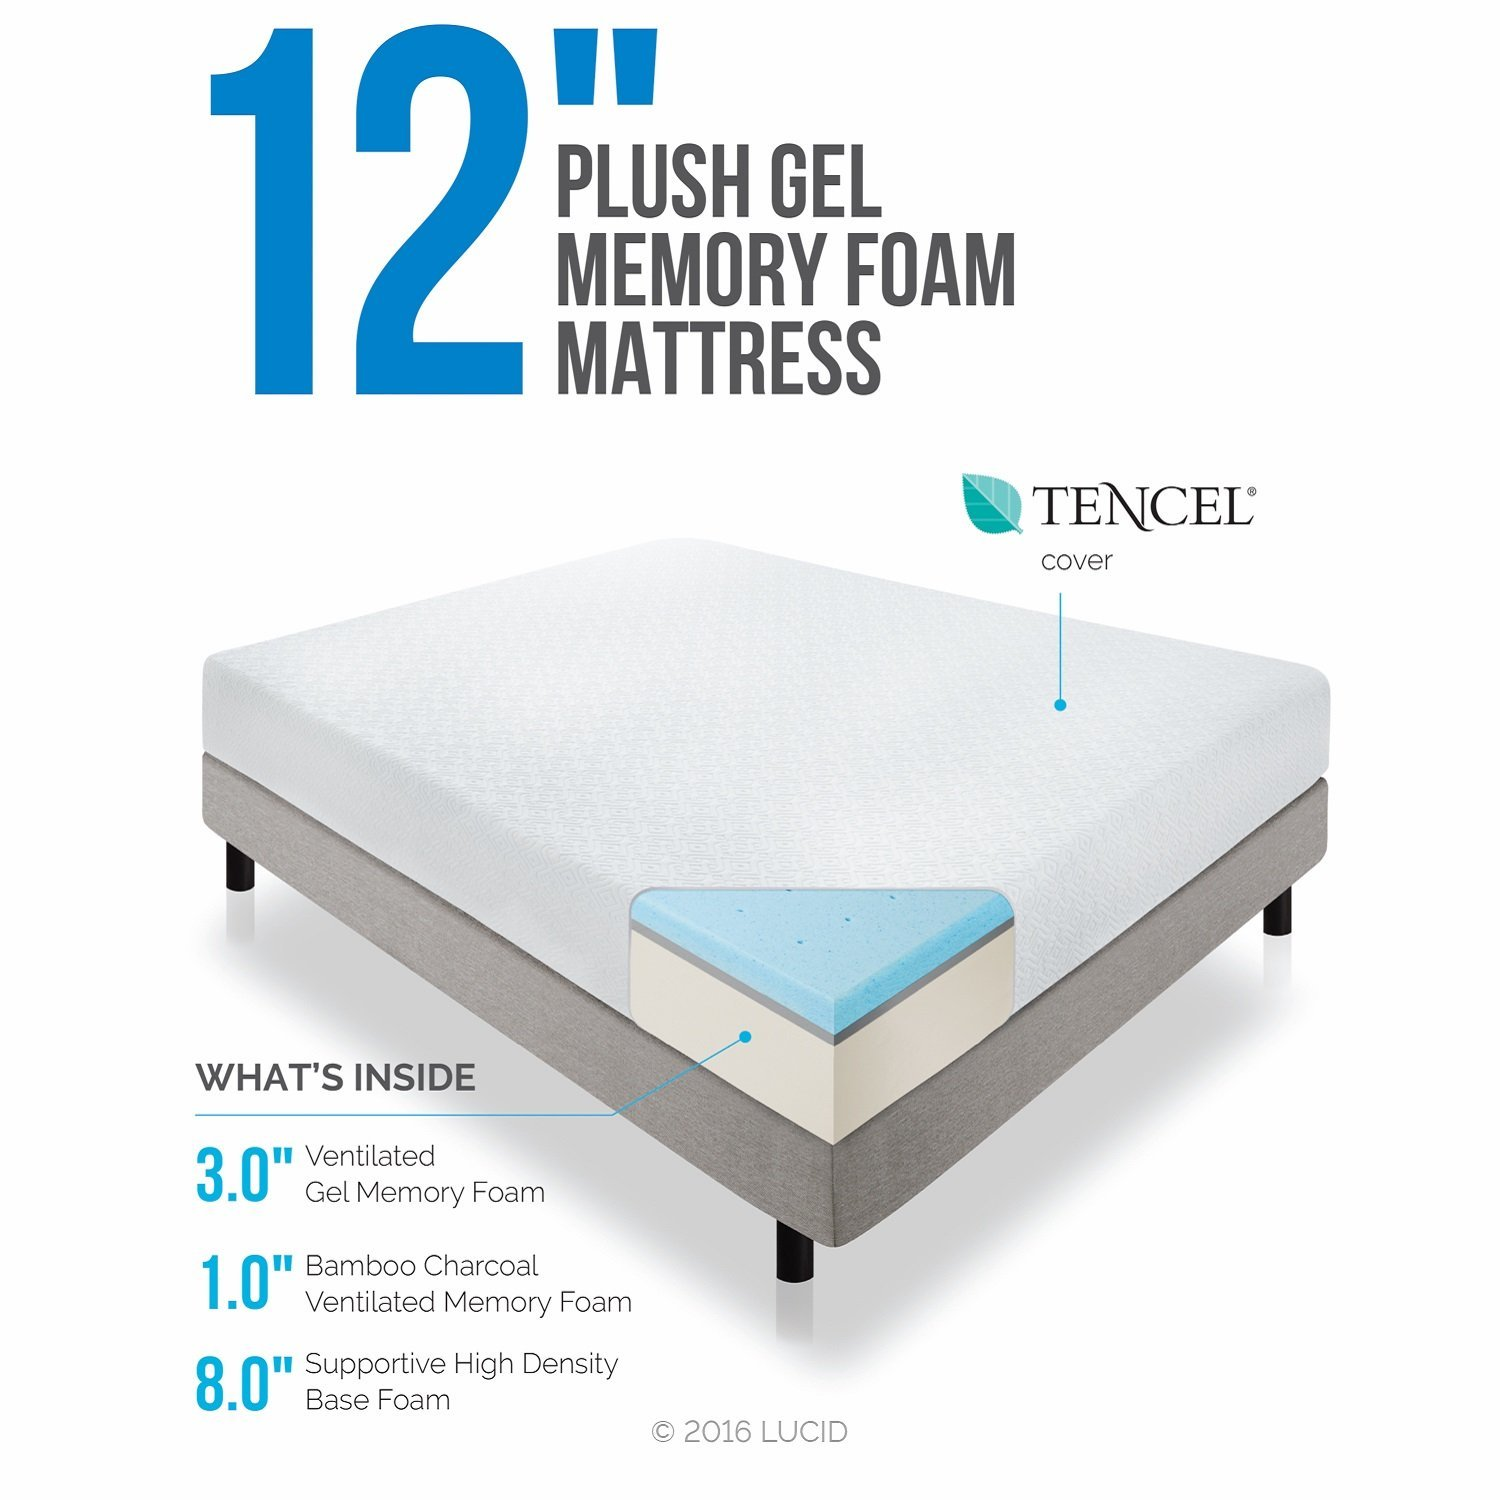 mattress inch under dynastymattress foam breeze reviews dynasty inflow tempurpedic vs best gel memory cool